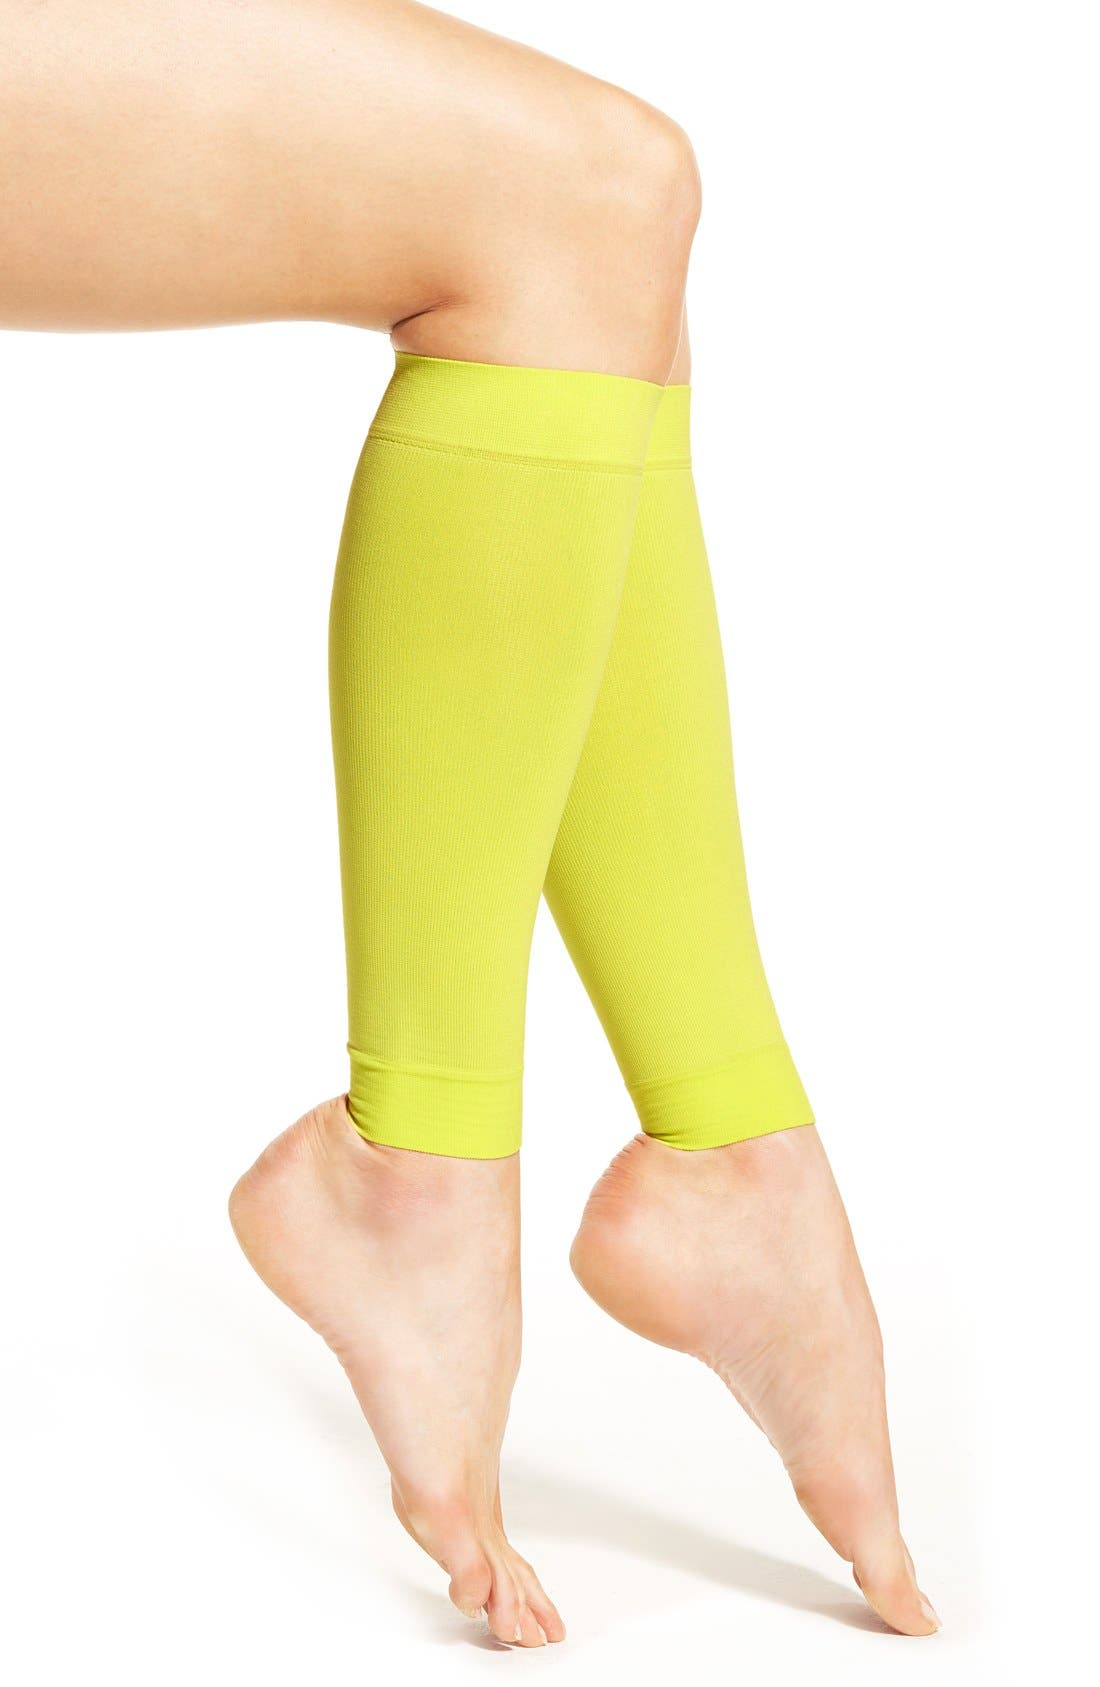 Graduated Compression Calf Sleeves,                         Main,                         color, Limeade